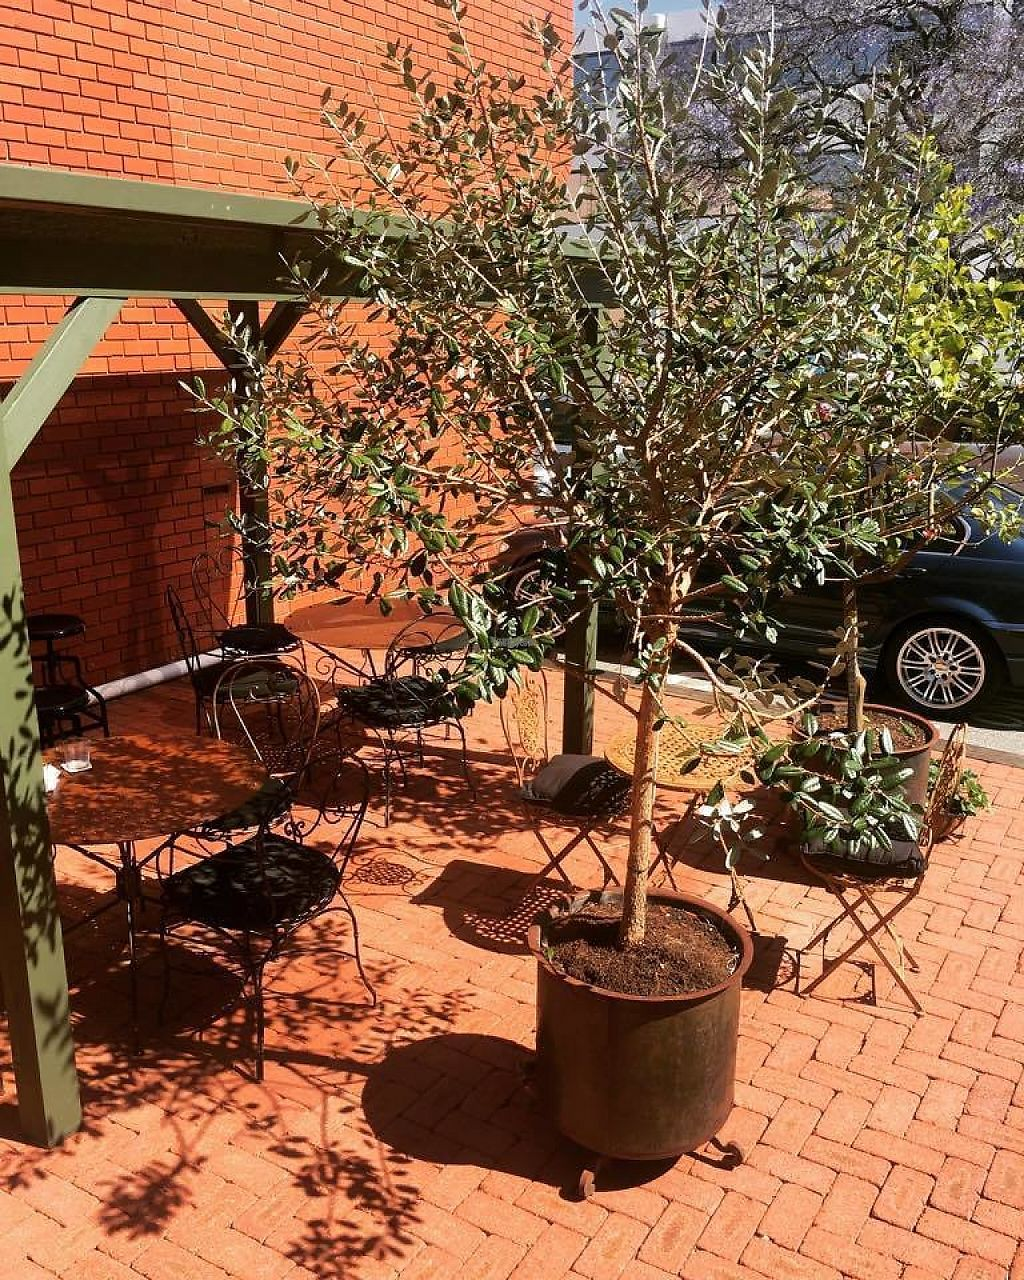 """Photo of Raw + More Cafe  by <a href=""""/members/profile/pb1987"""">pb1987</a> <br/>outdoor seating area at back  <br/> December 8, 2016  - <a href='/contact/abuse/image/76225/198200'>Report</a>"""